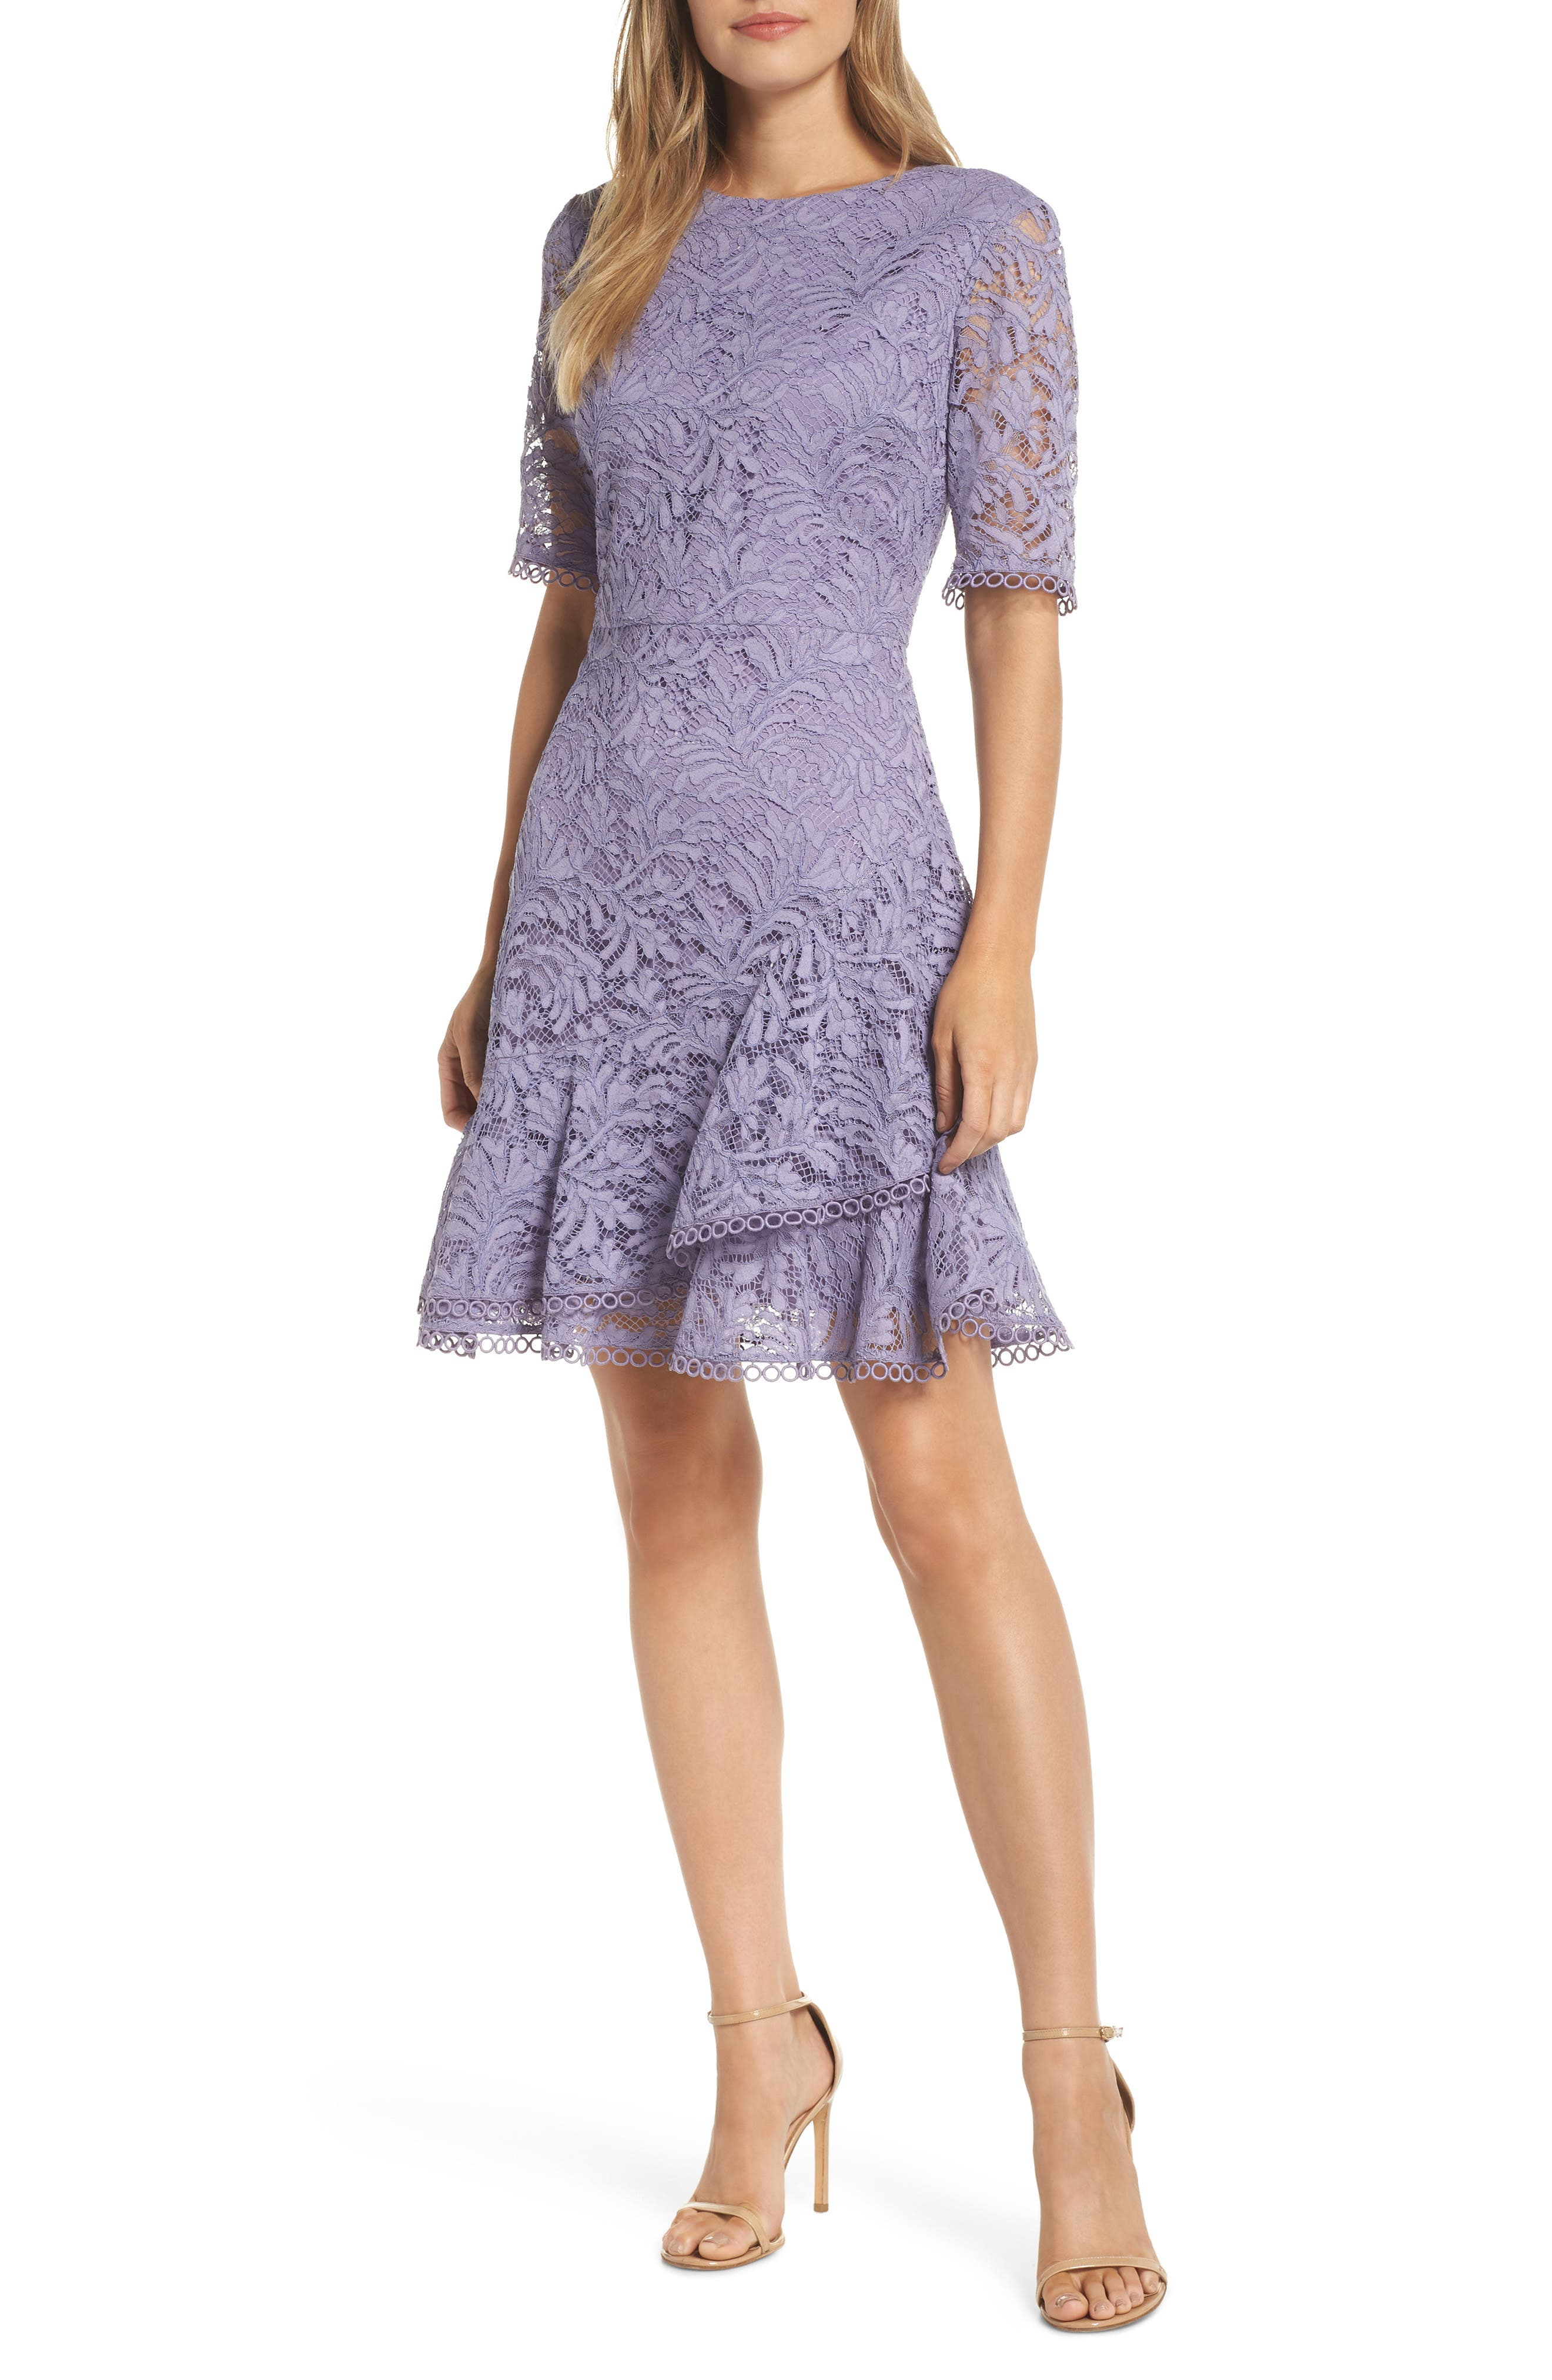 VINCE CAMUTO, Asymmetrical Ruffle Lace Fit & Flare Dress, Main thumbnail 1, color, 524